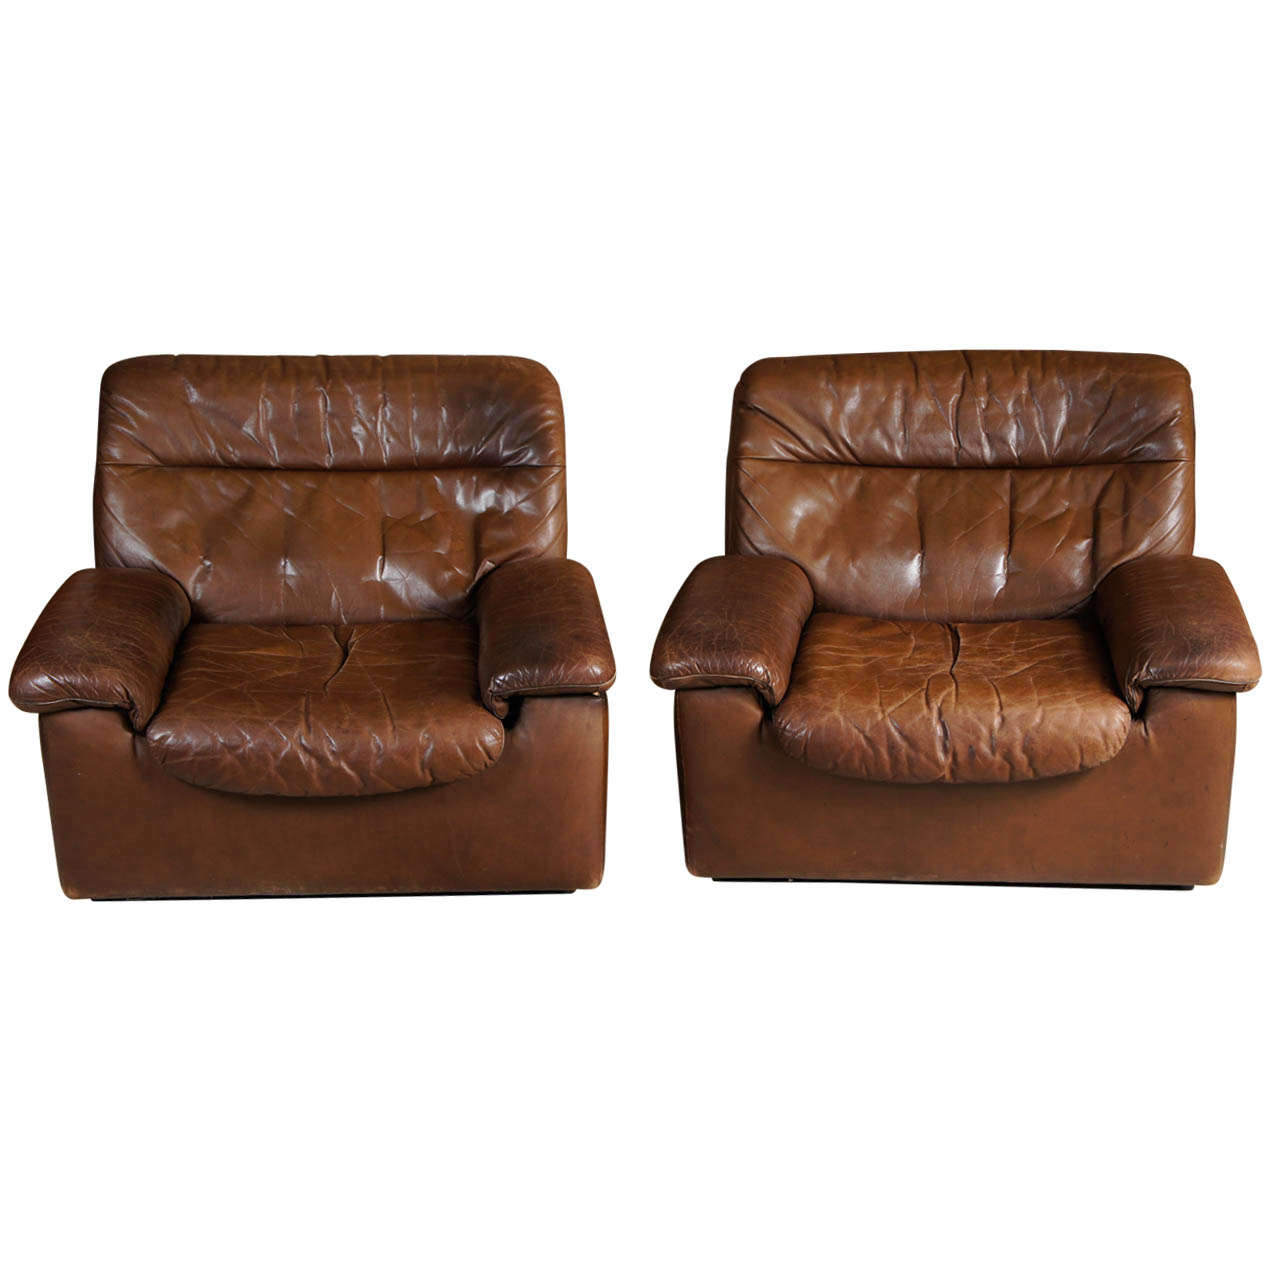 Pair Of 1970s Leather Club Chairs By De Sede Of